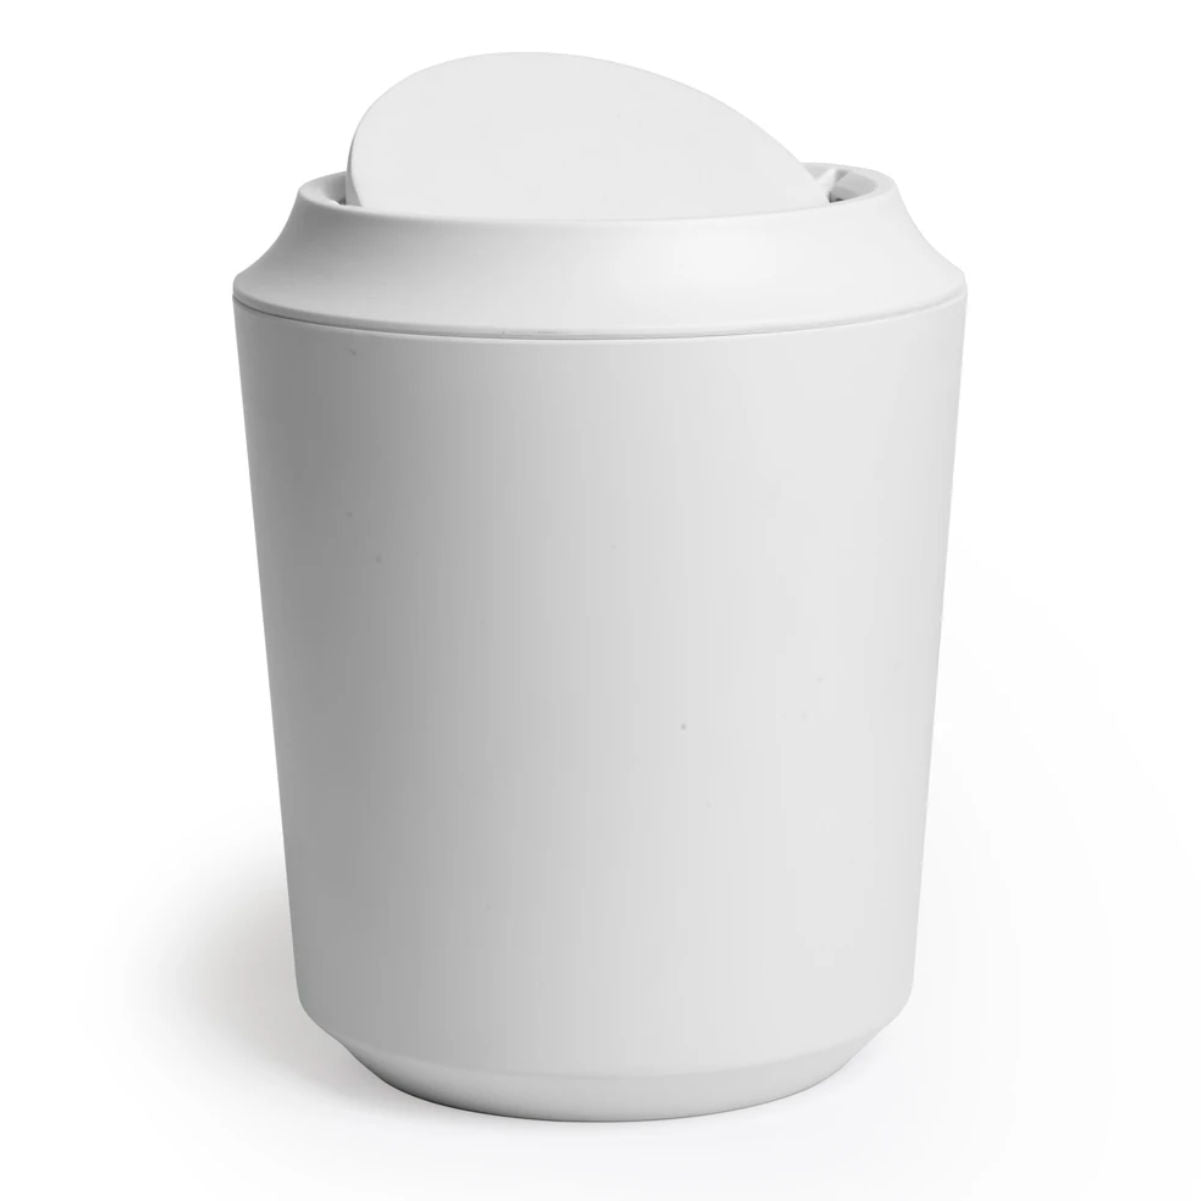 Umbra Corsa Can with lid, 8 litre, white